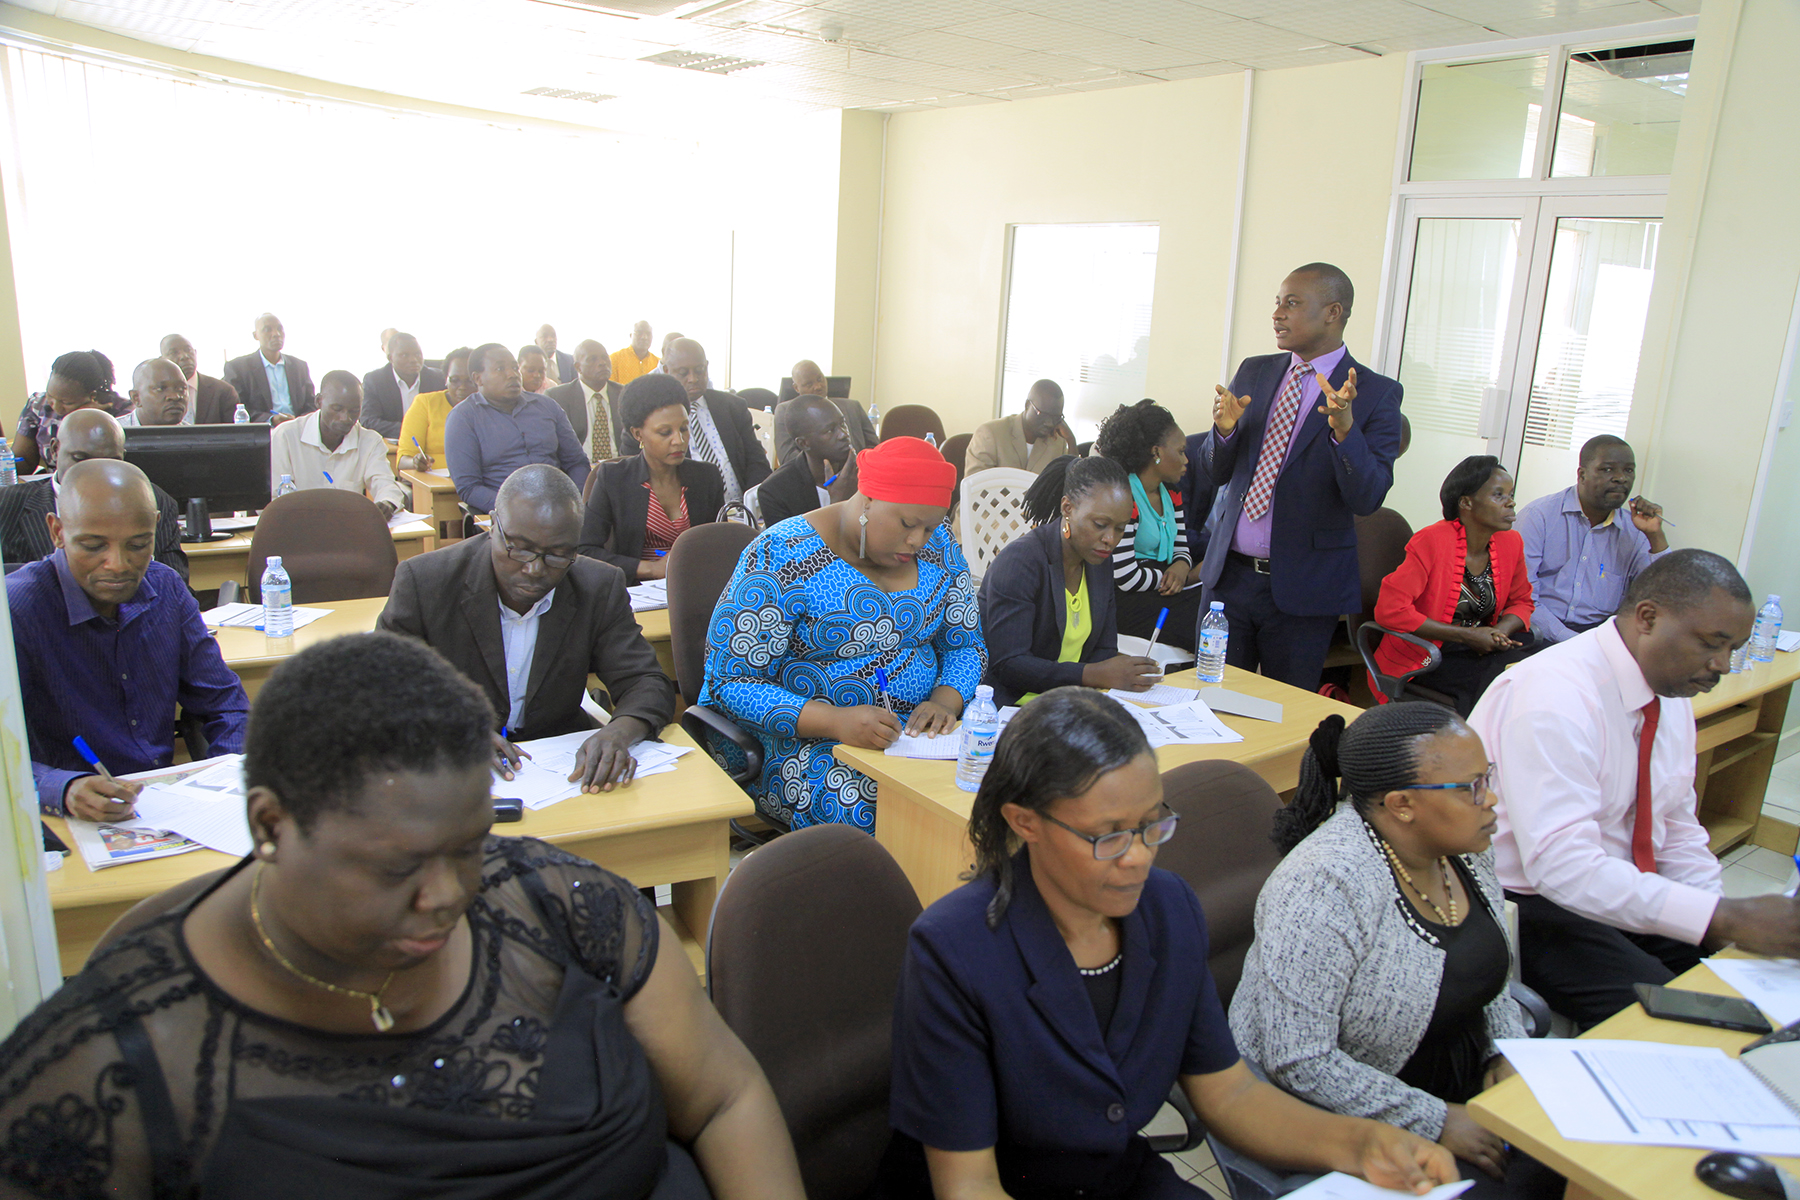 Participants during the training session